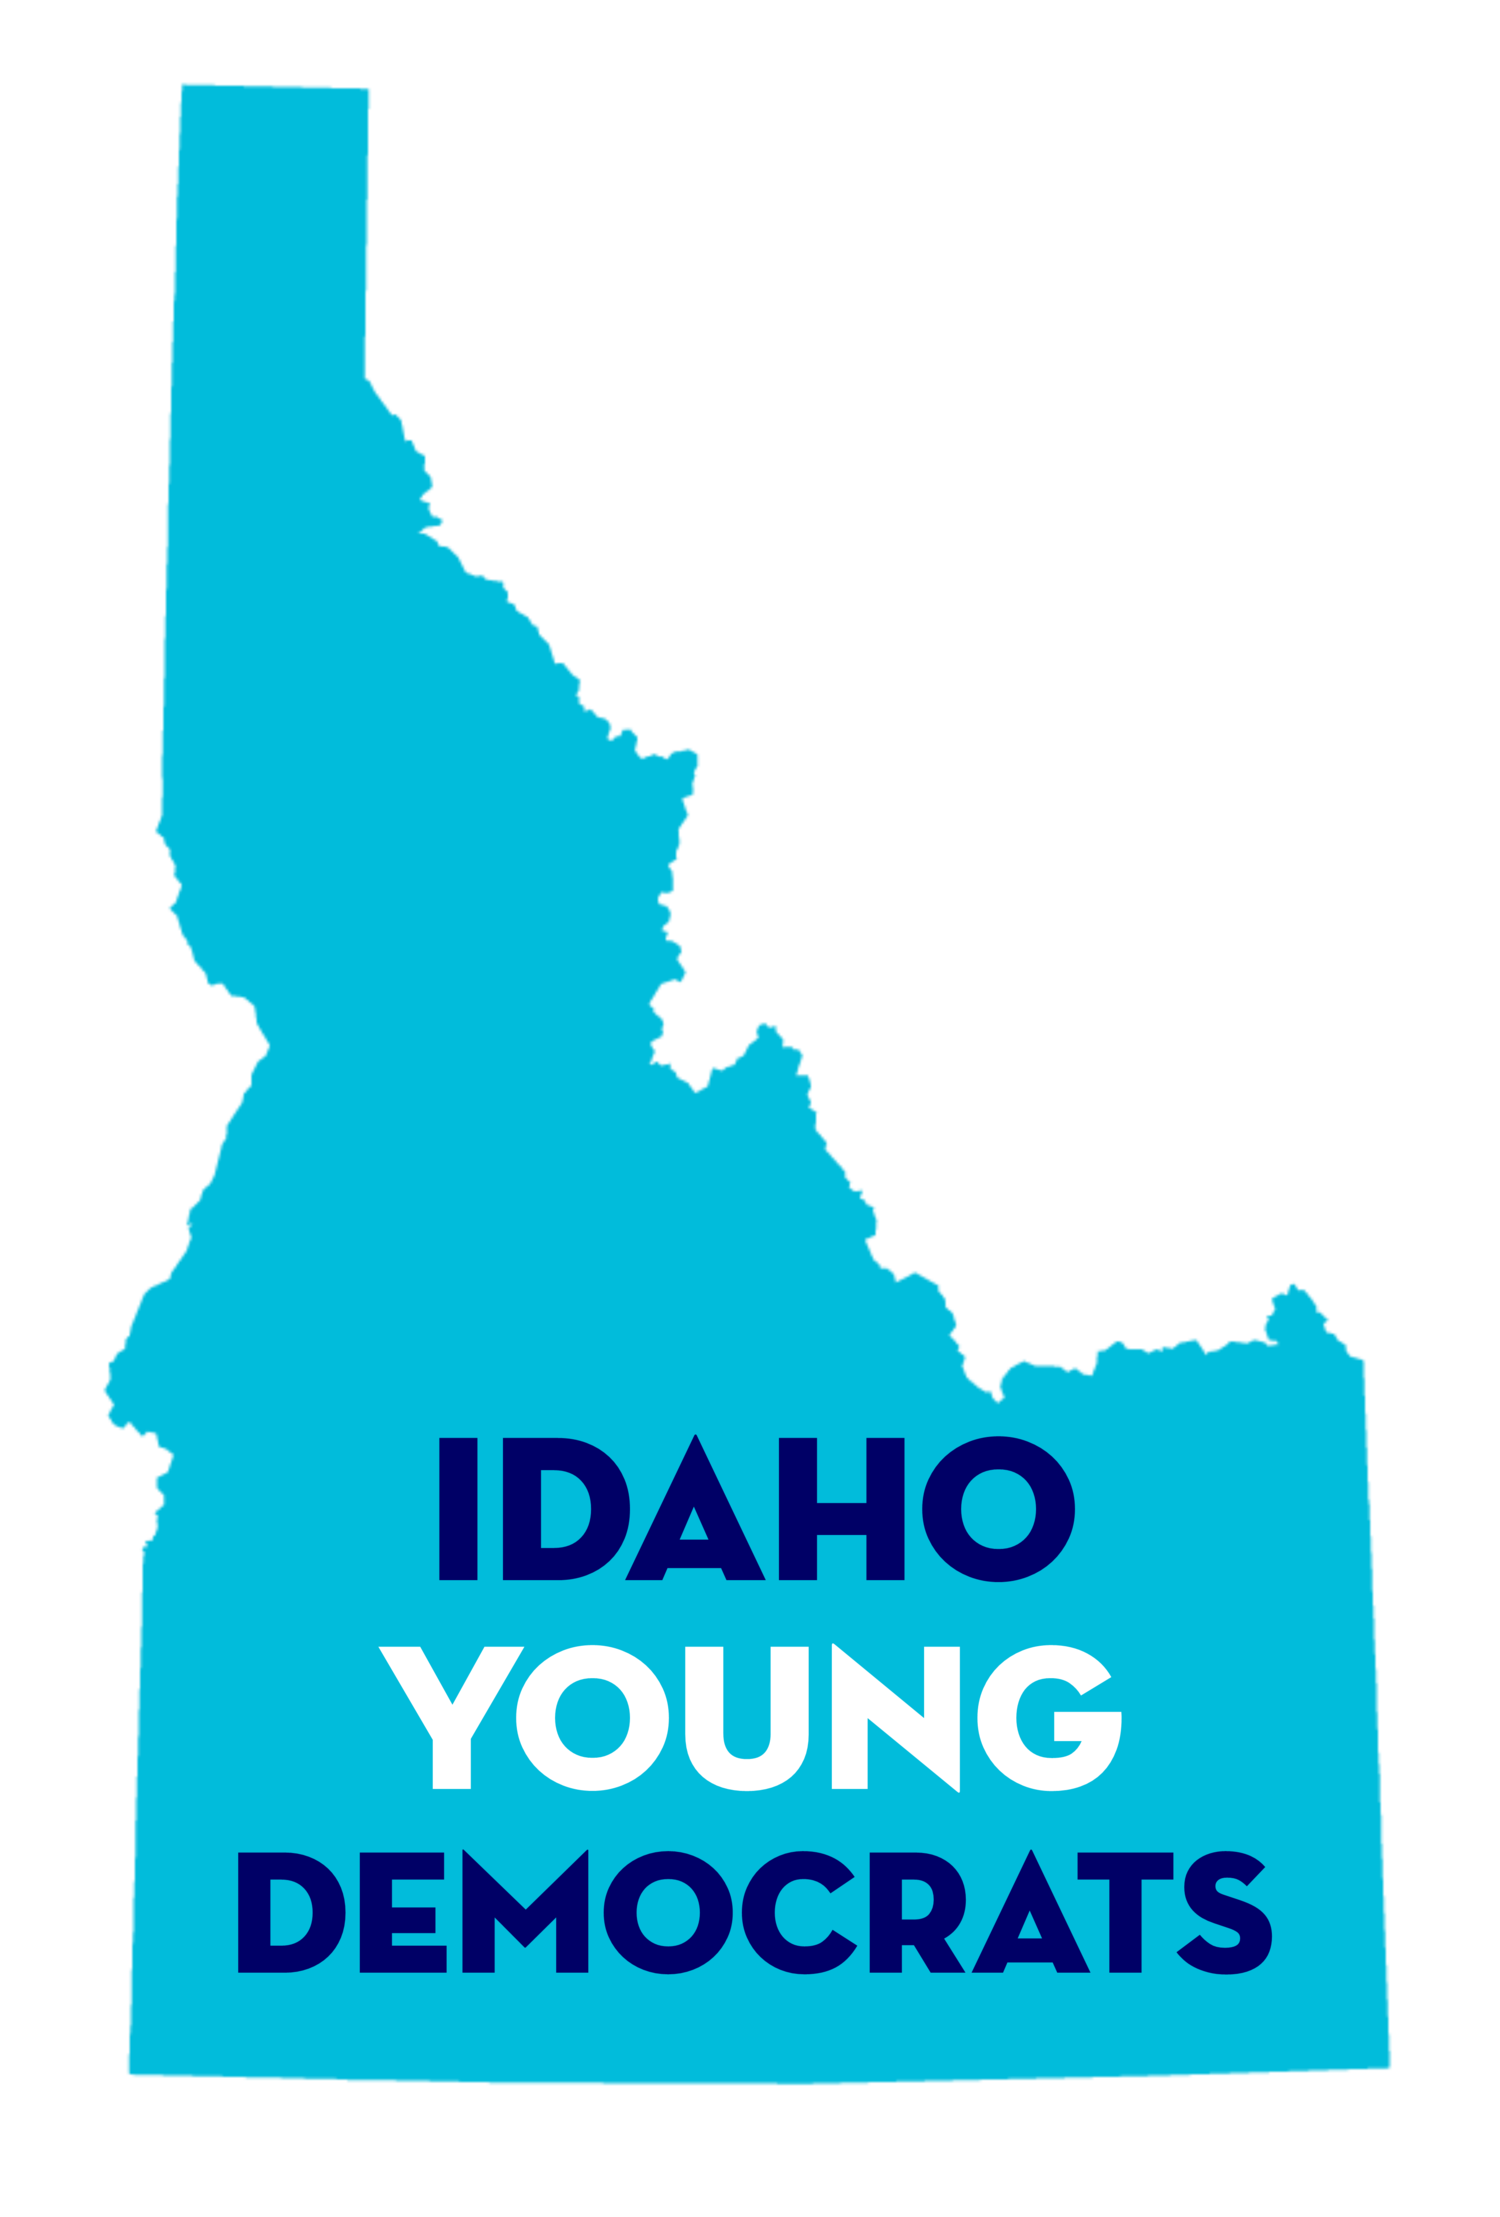 Idaho Young Democrats